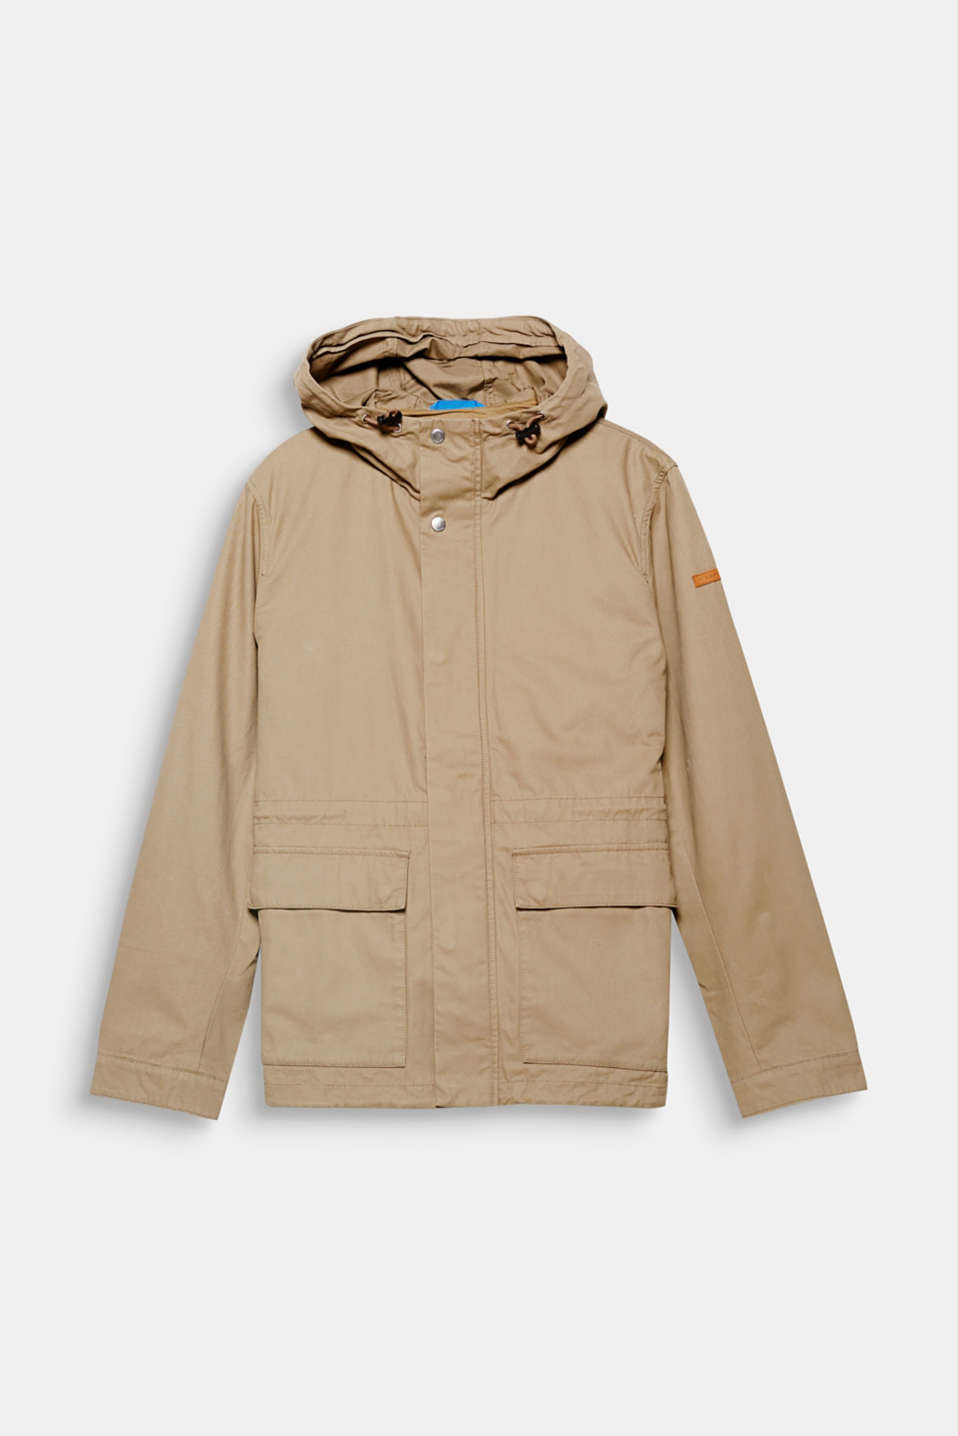 Perfect for the change in seasons! Thanks to the high-collar and hood, this jacket is perfect for